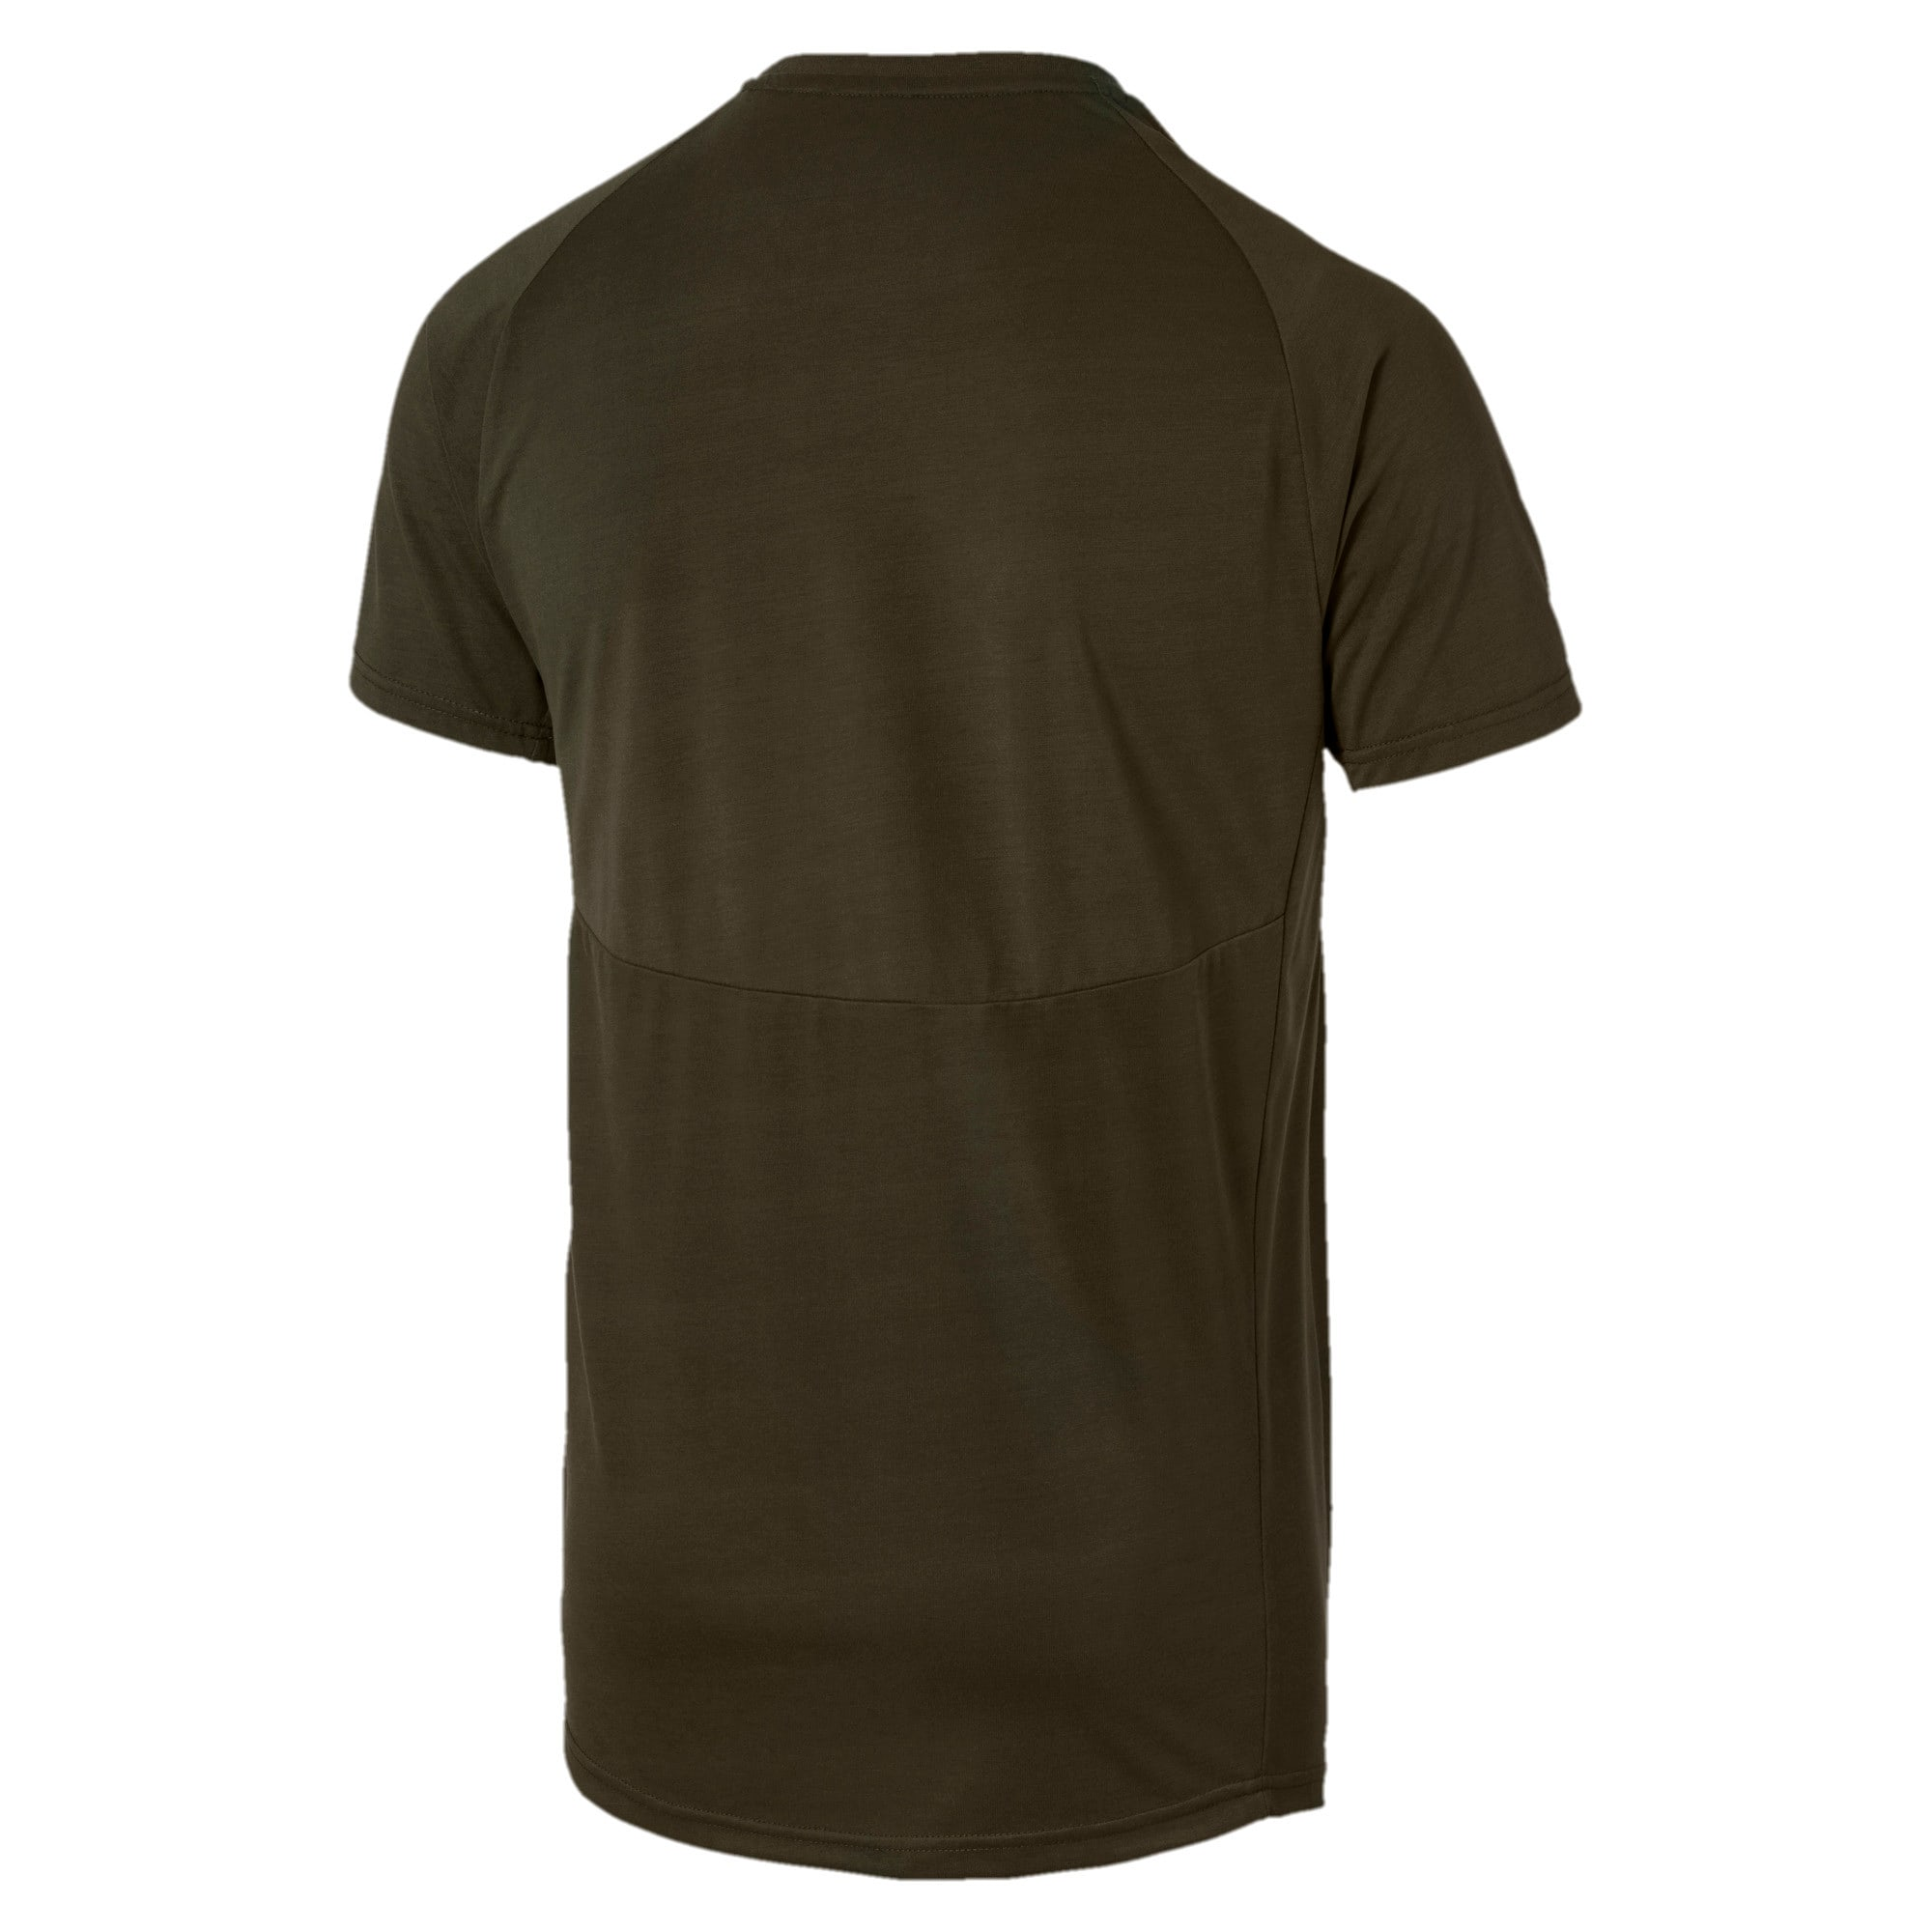 Thumbnail 5 of Evostripe Short Sleeve Men's Tee, Forest Night, medium-IND